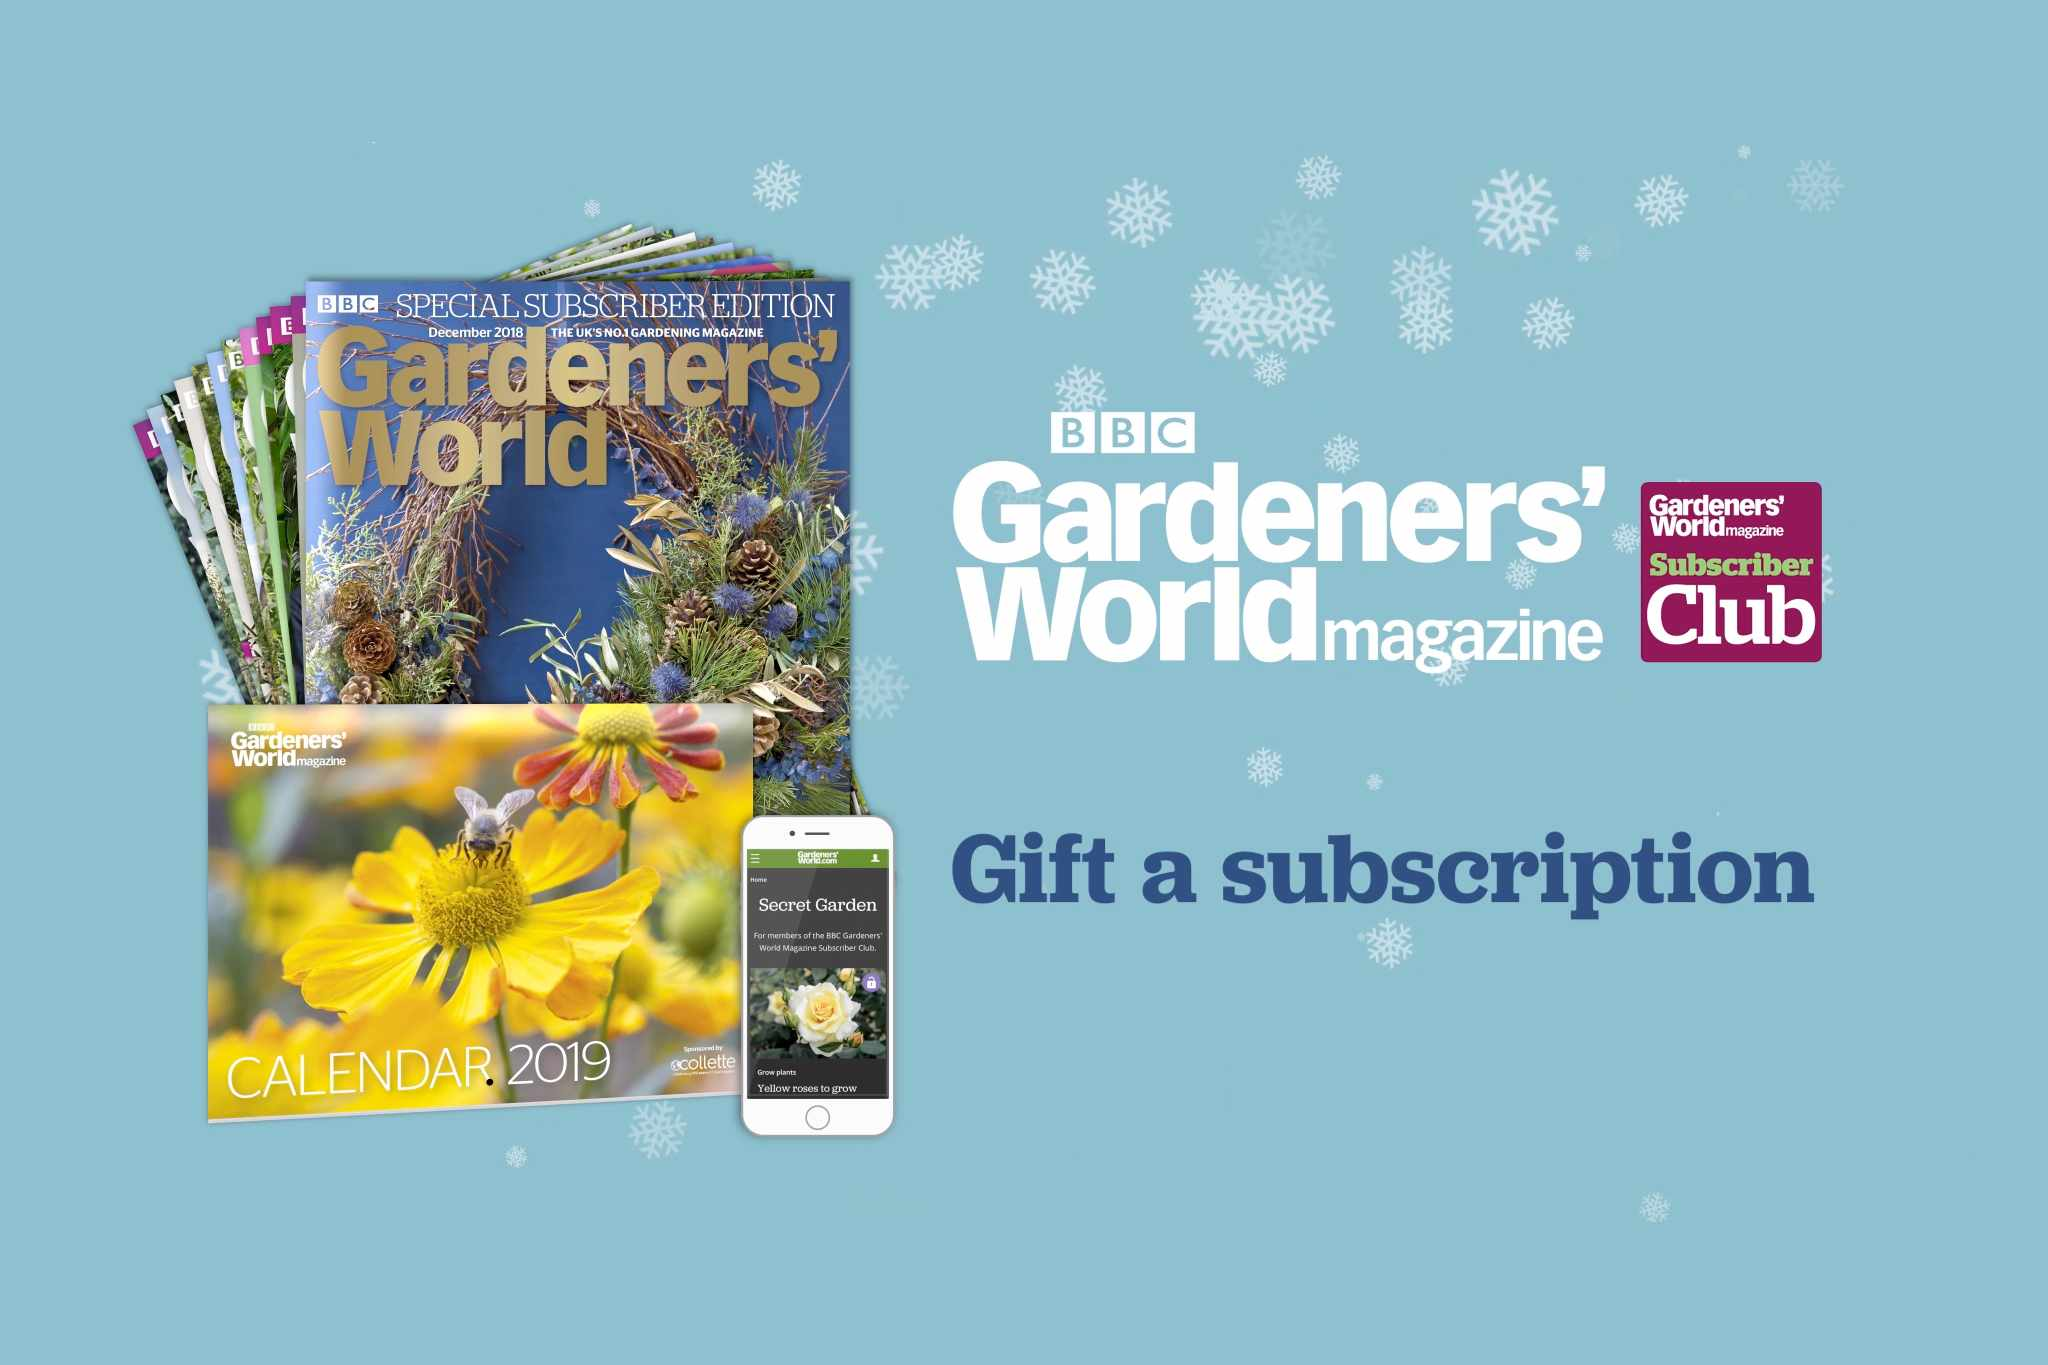 Gardeners' World Magazine - gift a subscription